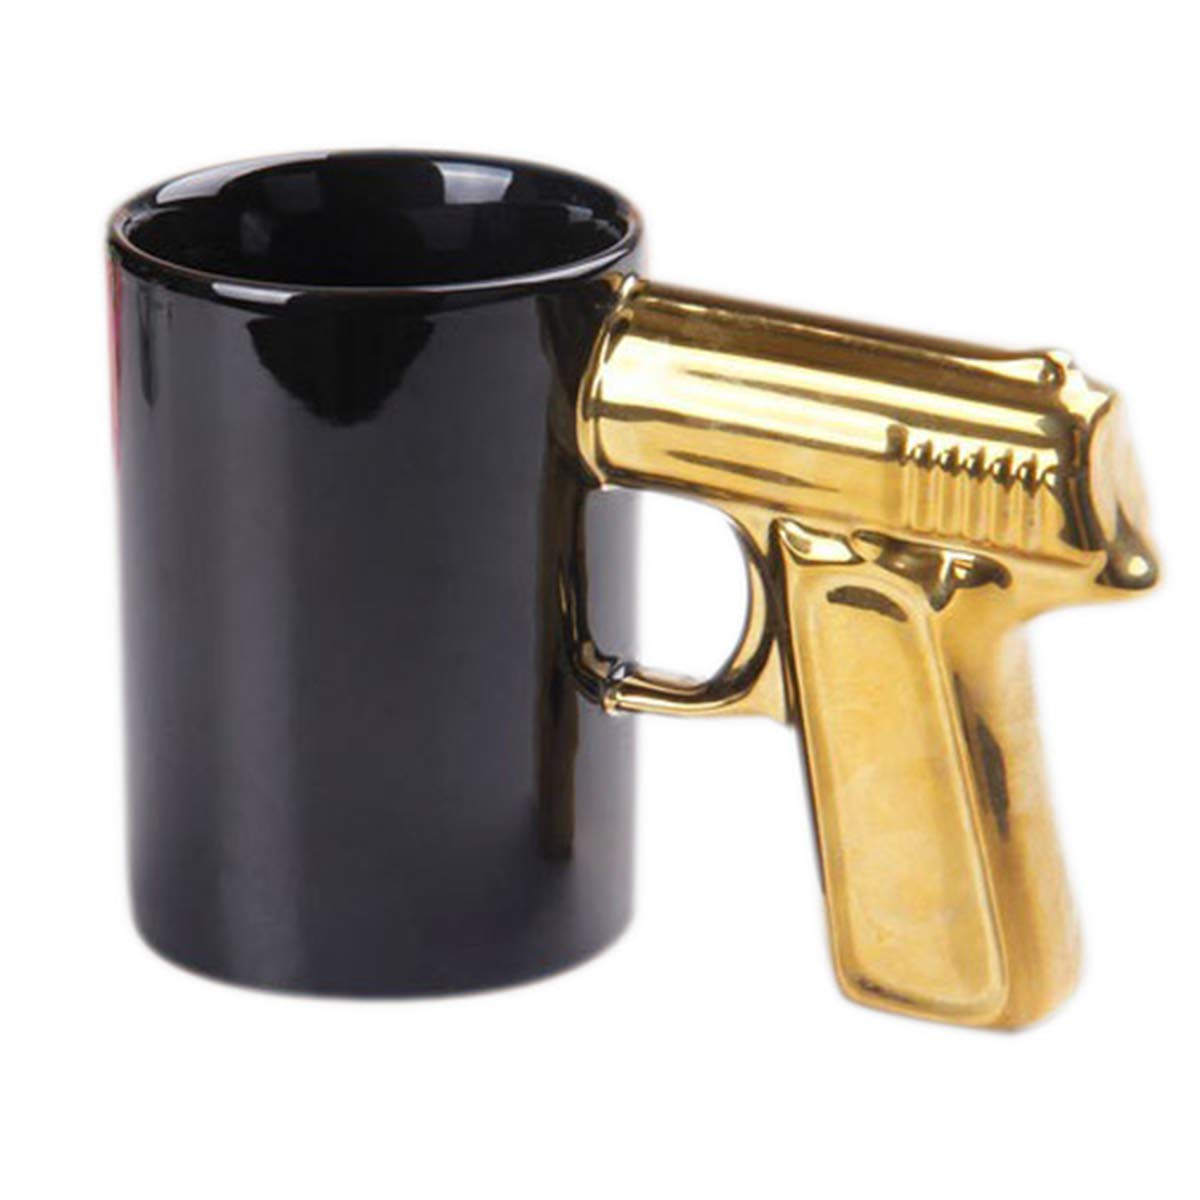 BonZeaL Pistol Shaped Handle Ceramic Coffee Mugs Tea Cups Birthday Gifts For Boyfriend Friend Boys Gift Men Him Quirky Husband Dad Brother